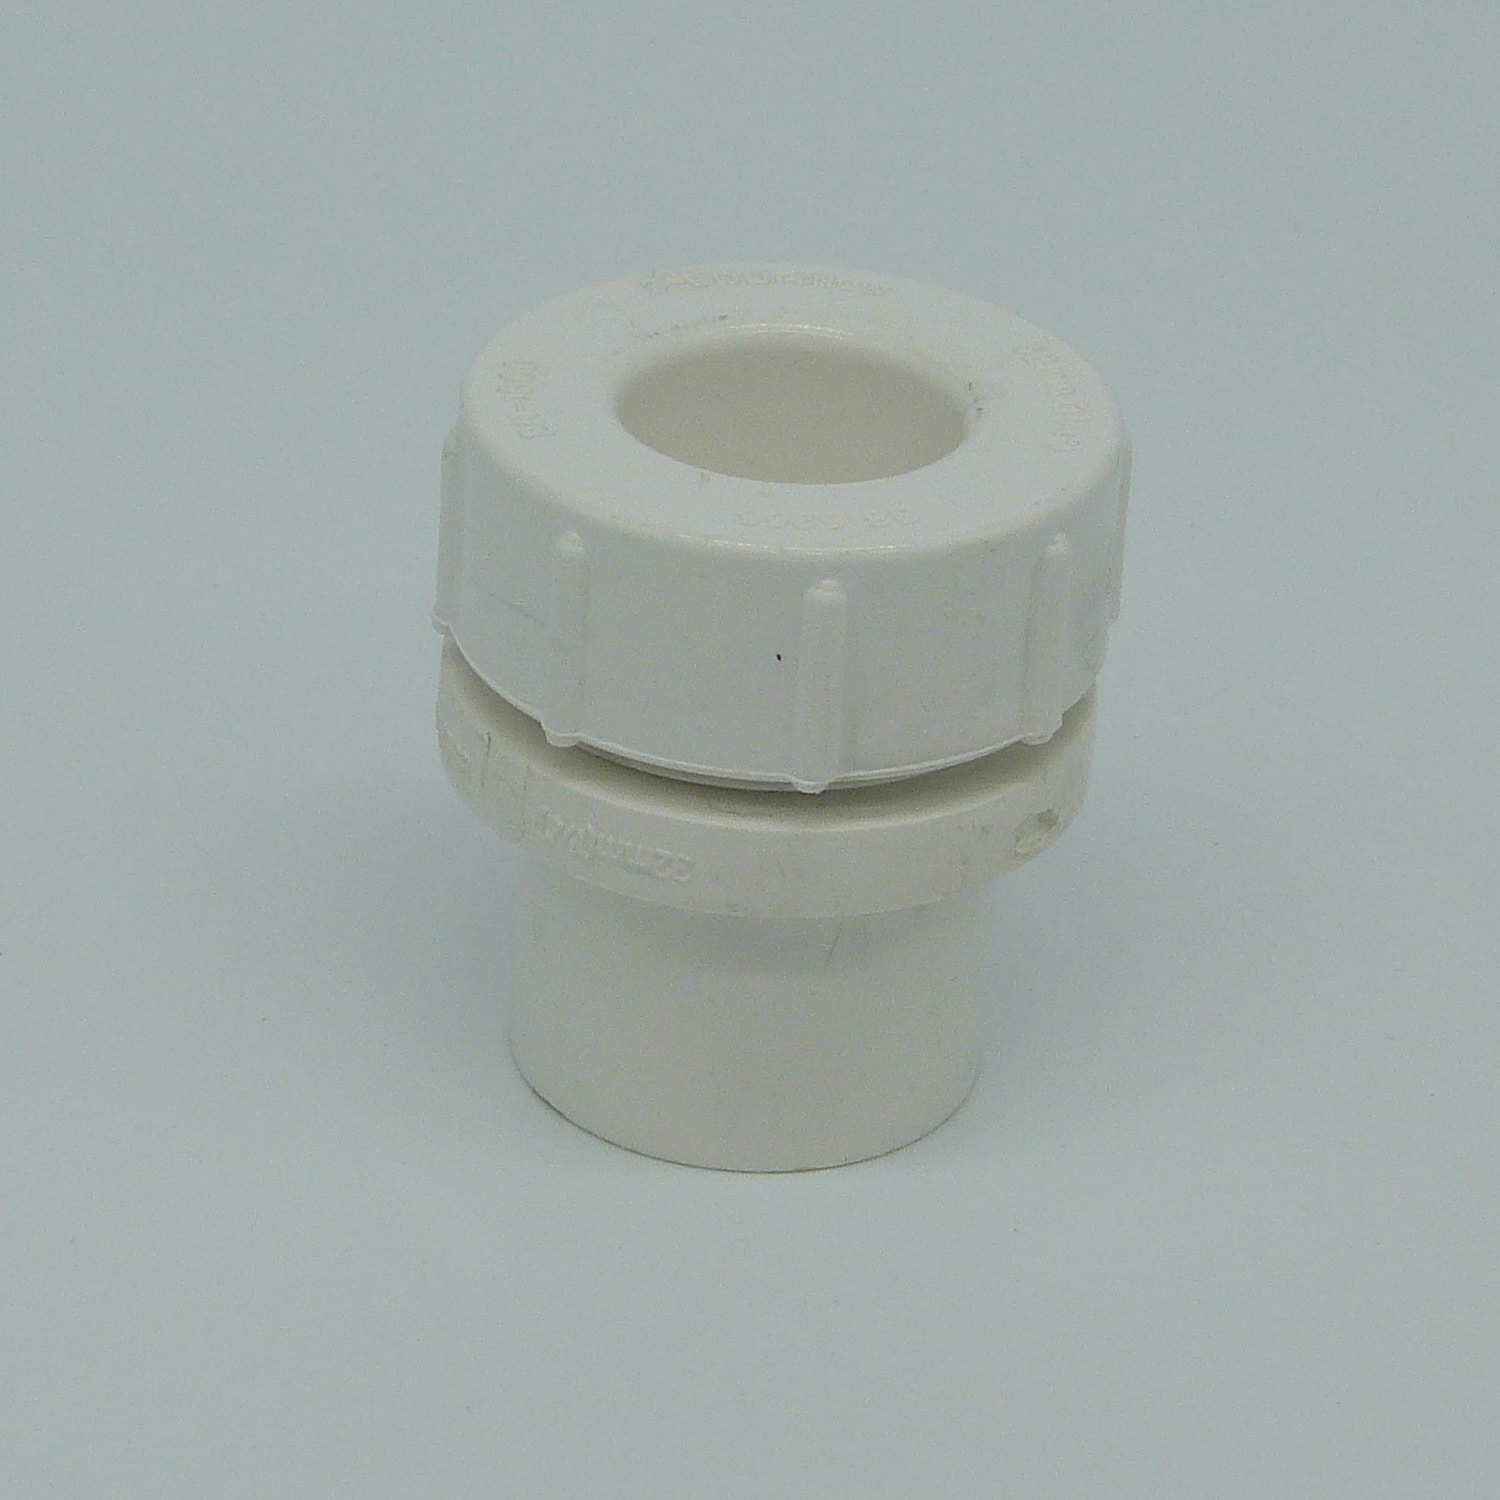 32mm solvent weld screw access cap white